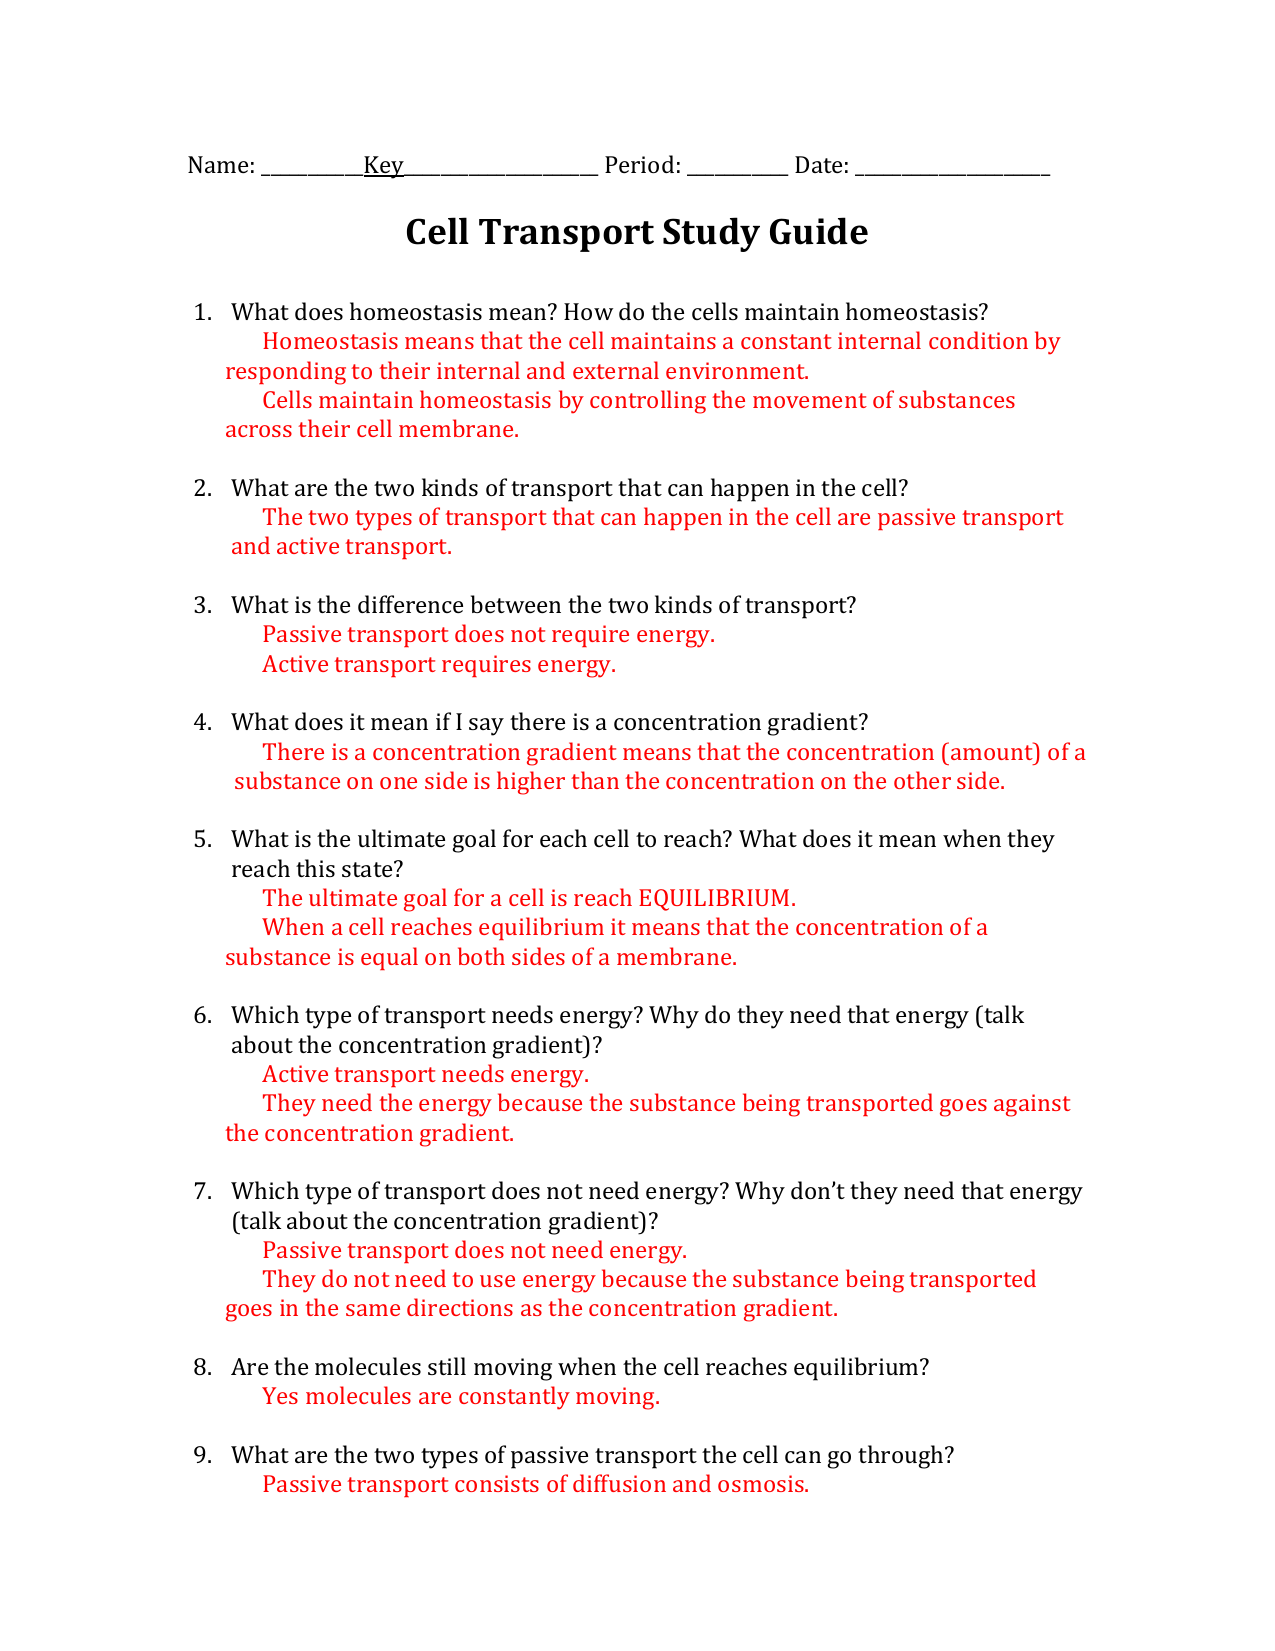 Chapter 7 Section 4 Cellular Transport Answer Key